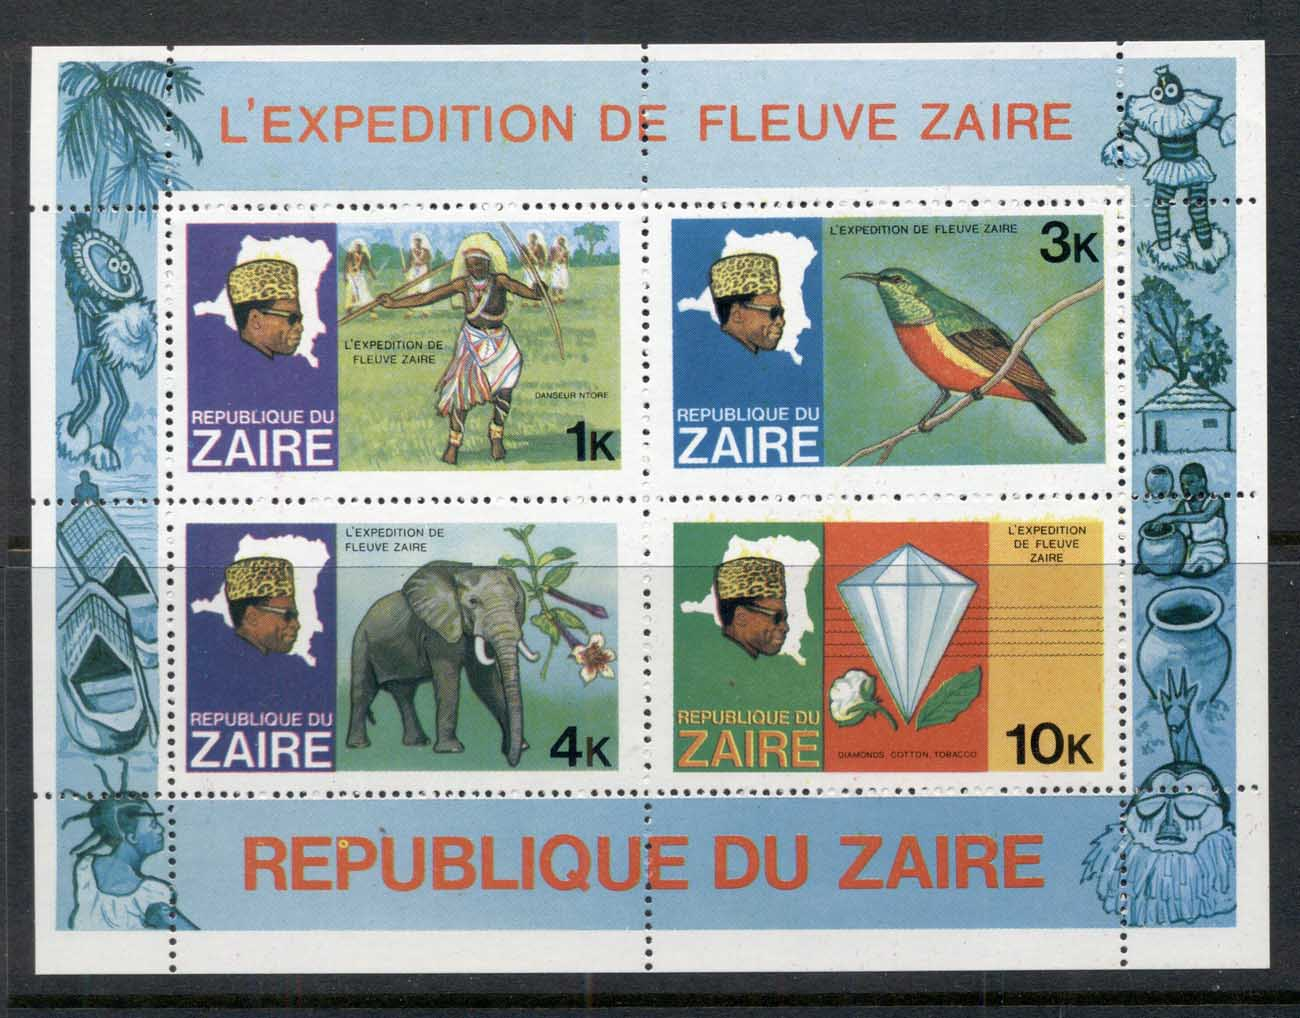 Zaire 1979 Zaire River Expedition, Elephant, Bird MS MUH